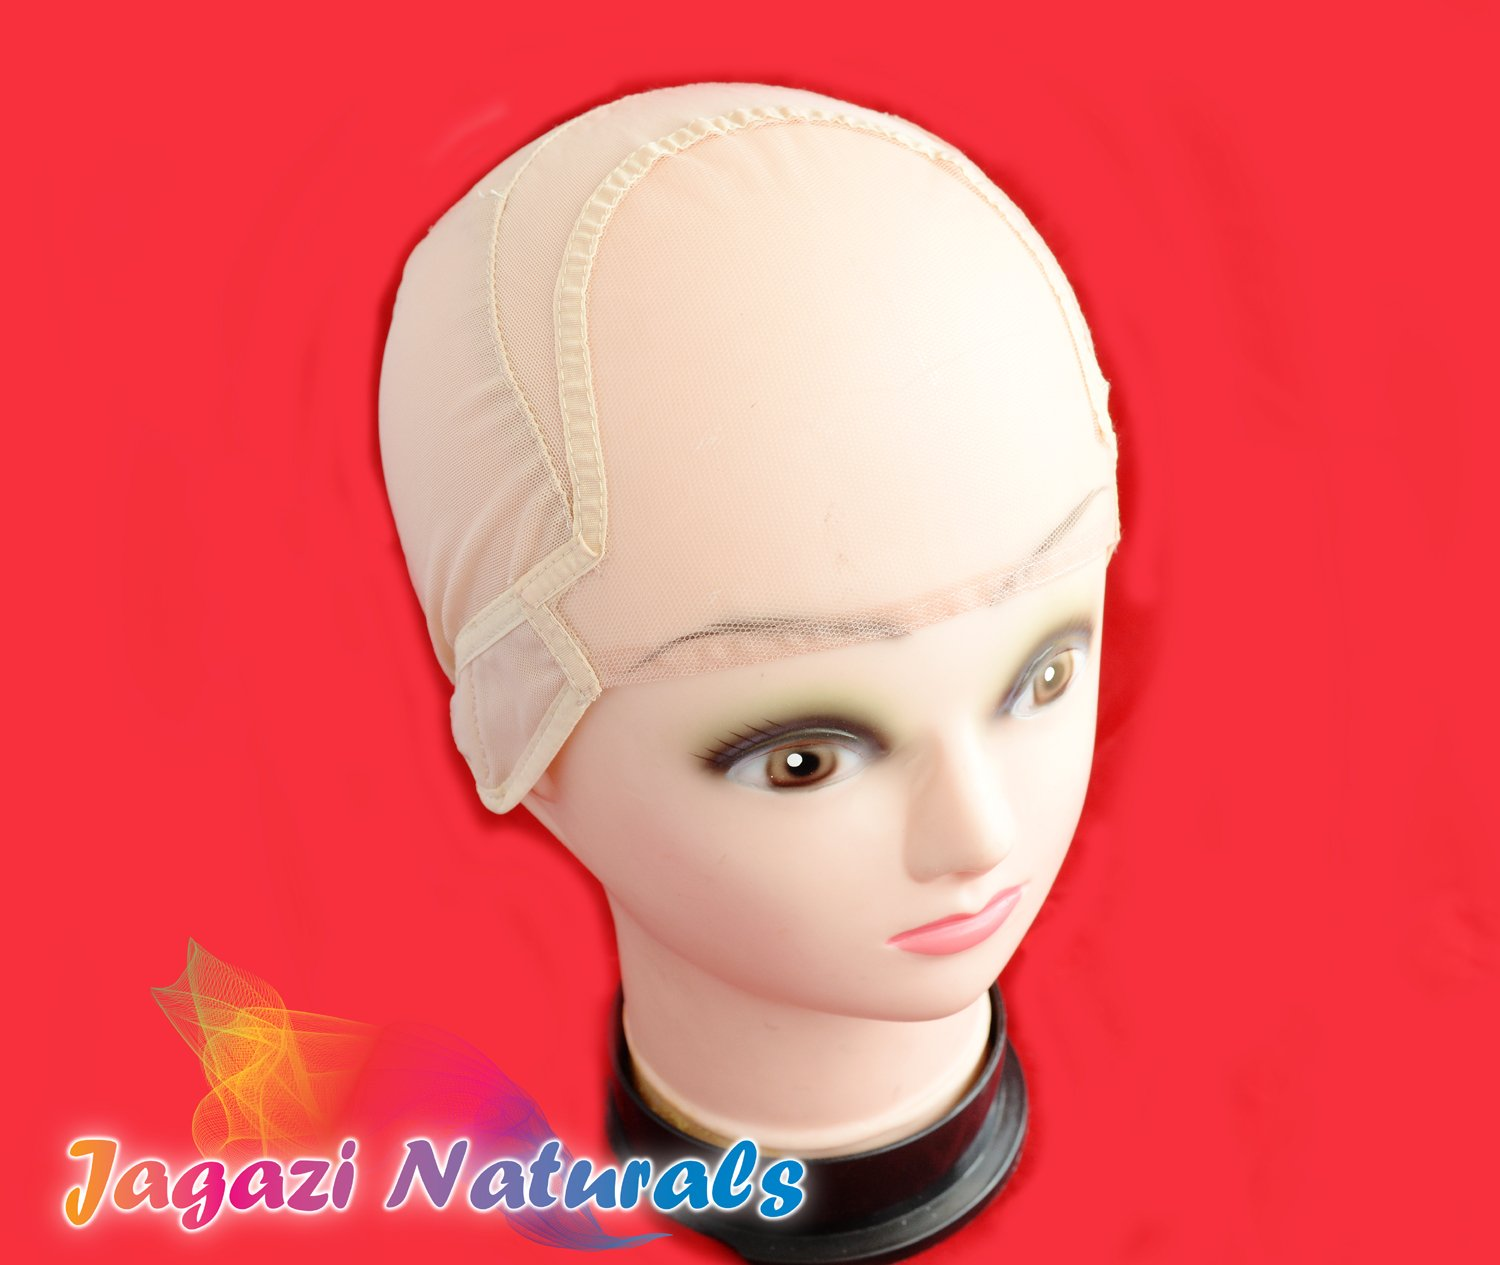 Snuggle Glueless Full Lace Wig Making Cap. Wig Cap. Weaving Mesh Net With Strap (Small)